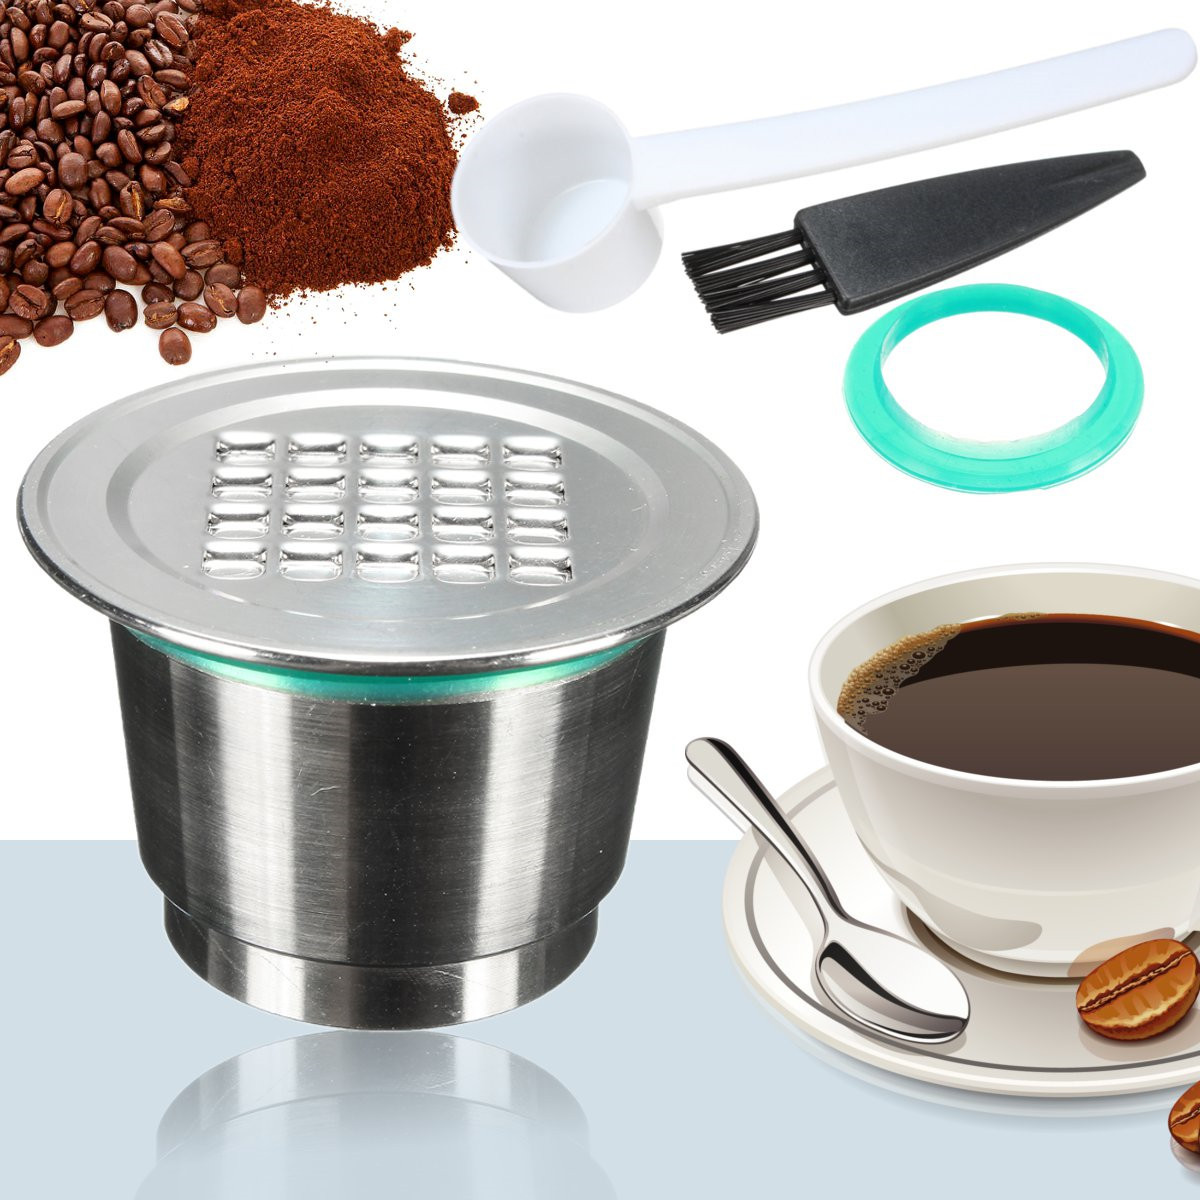 Reusable Refillable Stainless Steel Coffee Capsule with Spoon For Nespresso Machine New